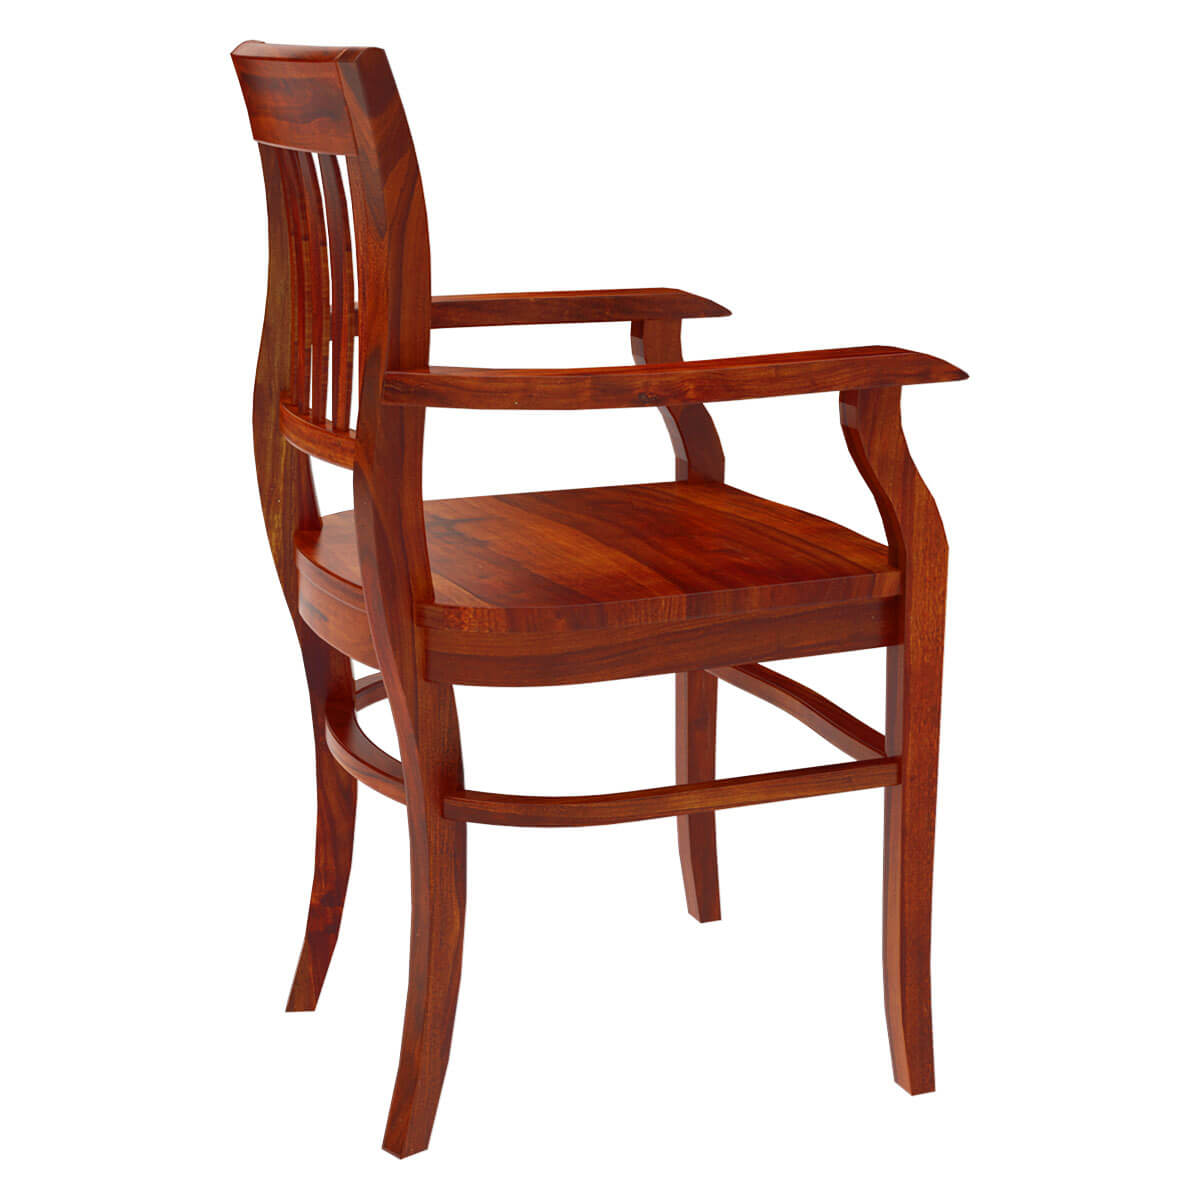 Unfinished Wooden Chairs Siena Rustic Solid Wood Arm Dining Chair